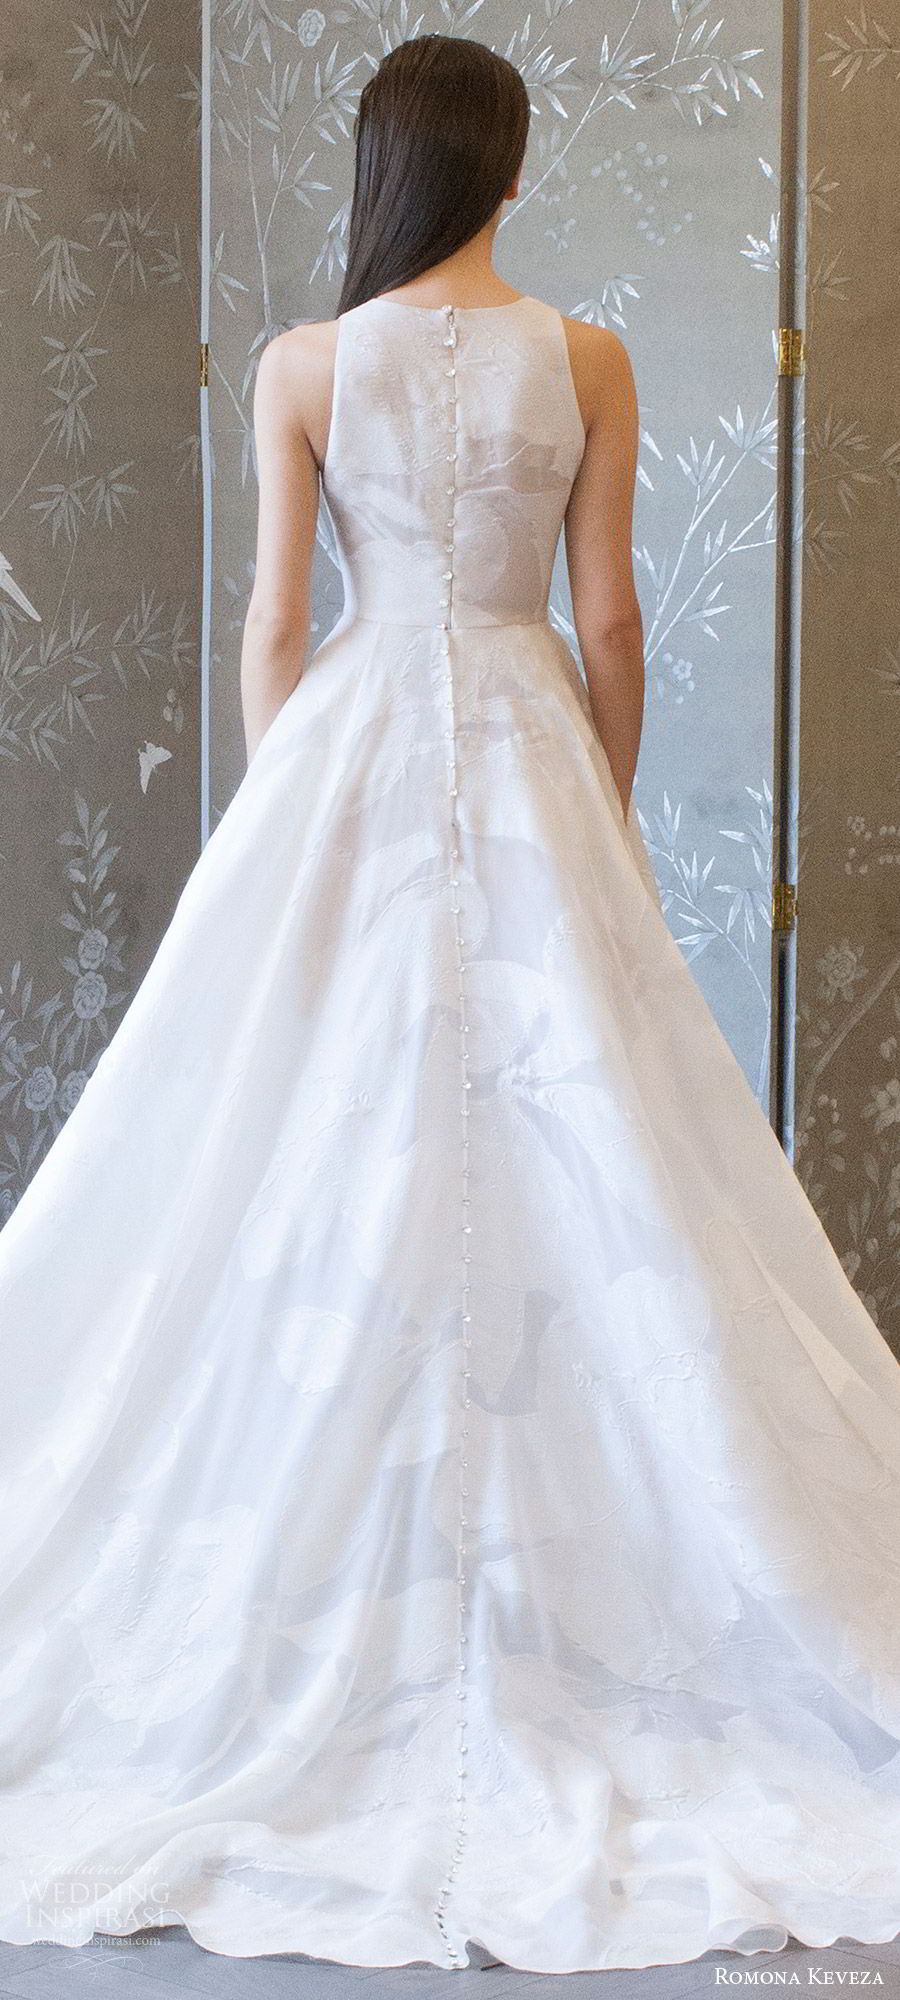 romona keveza spring 2018 bridal sleeveless jewel neck a line wedding dress (rk8404) bv train modern romantic